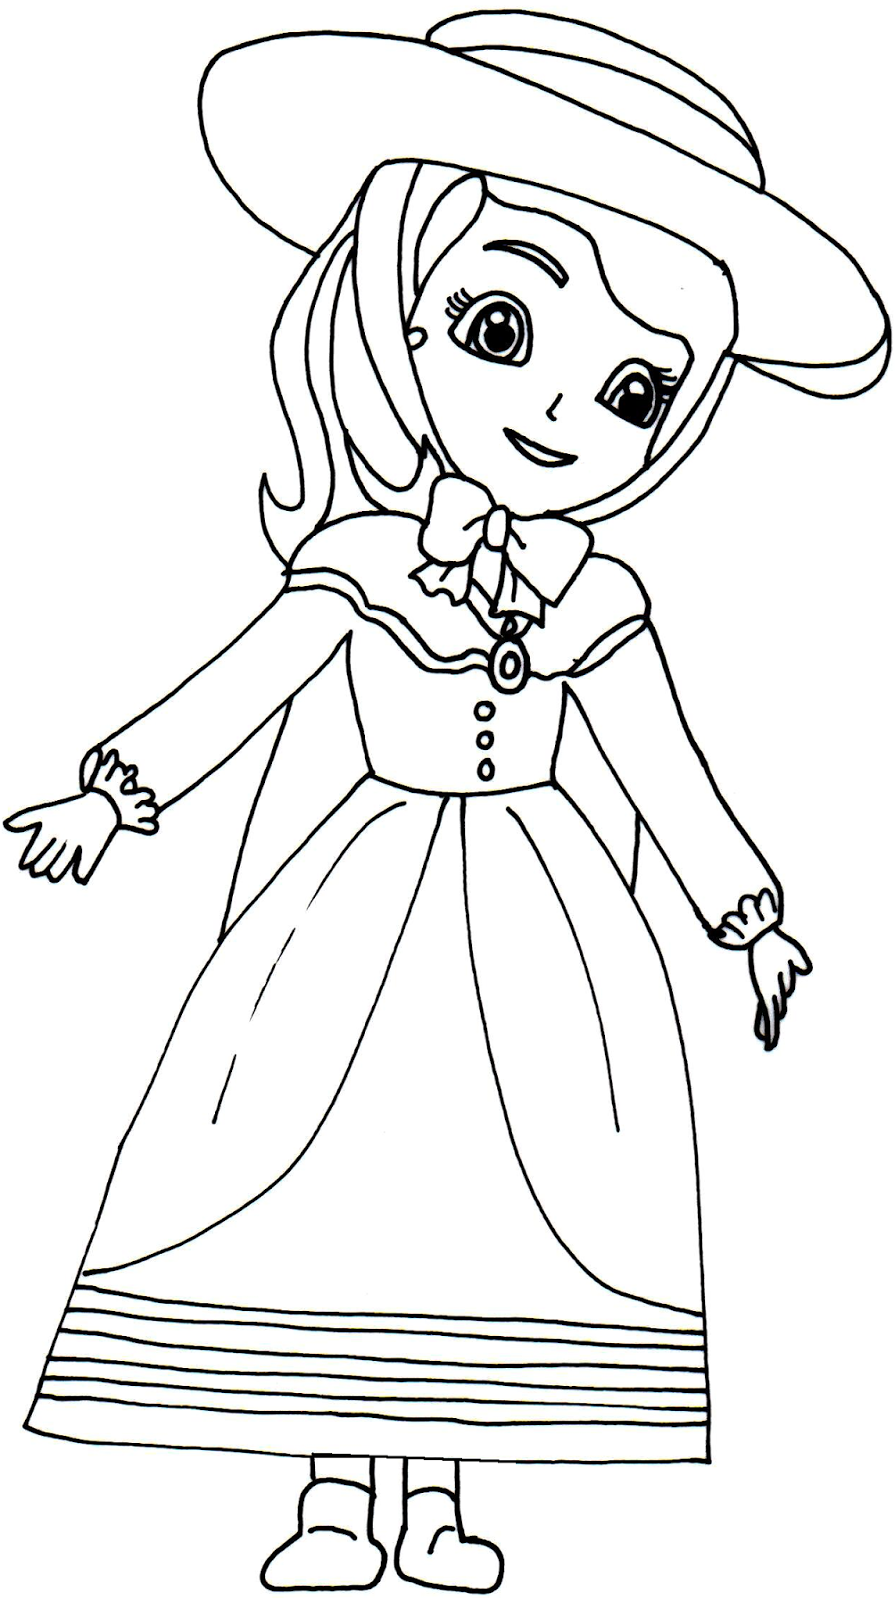 picture relating to Sofia the First Printable Coloring Pages titled sofia the initially printable coloring webpages